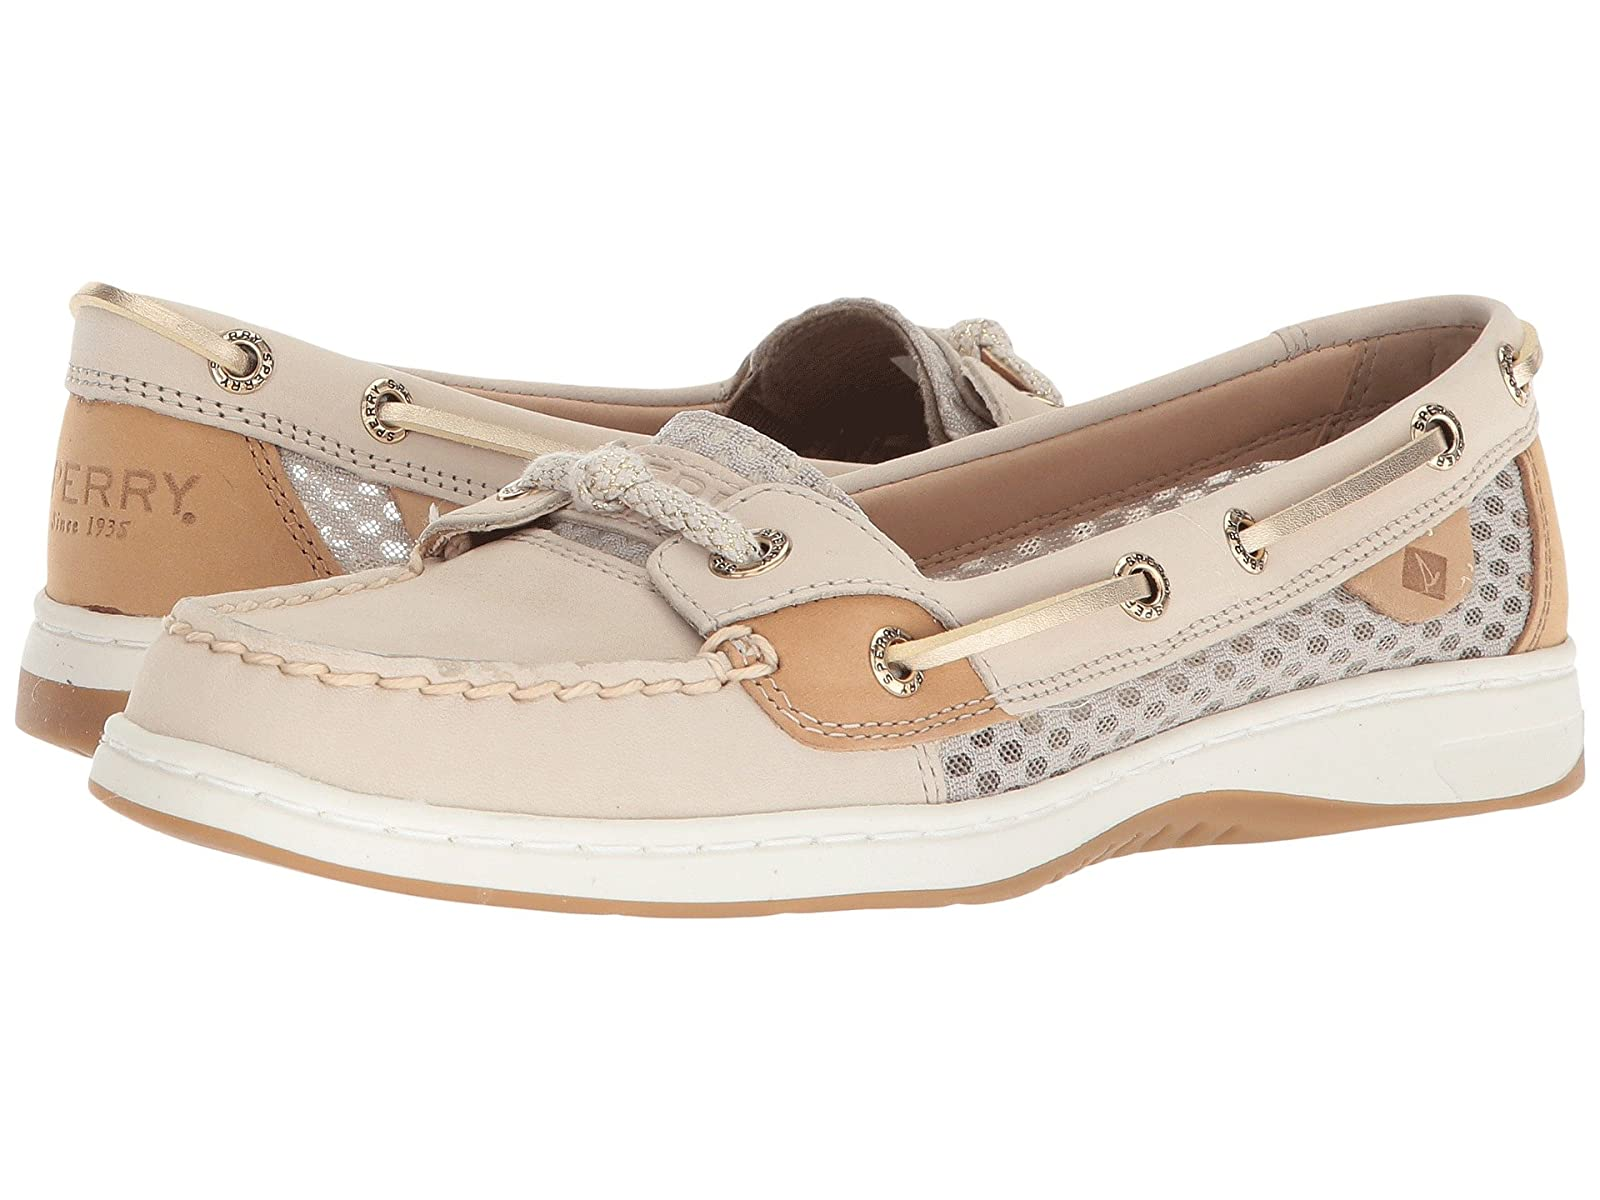 Sperry SolefishCheap and distinctive eye-catching shoes